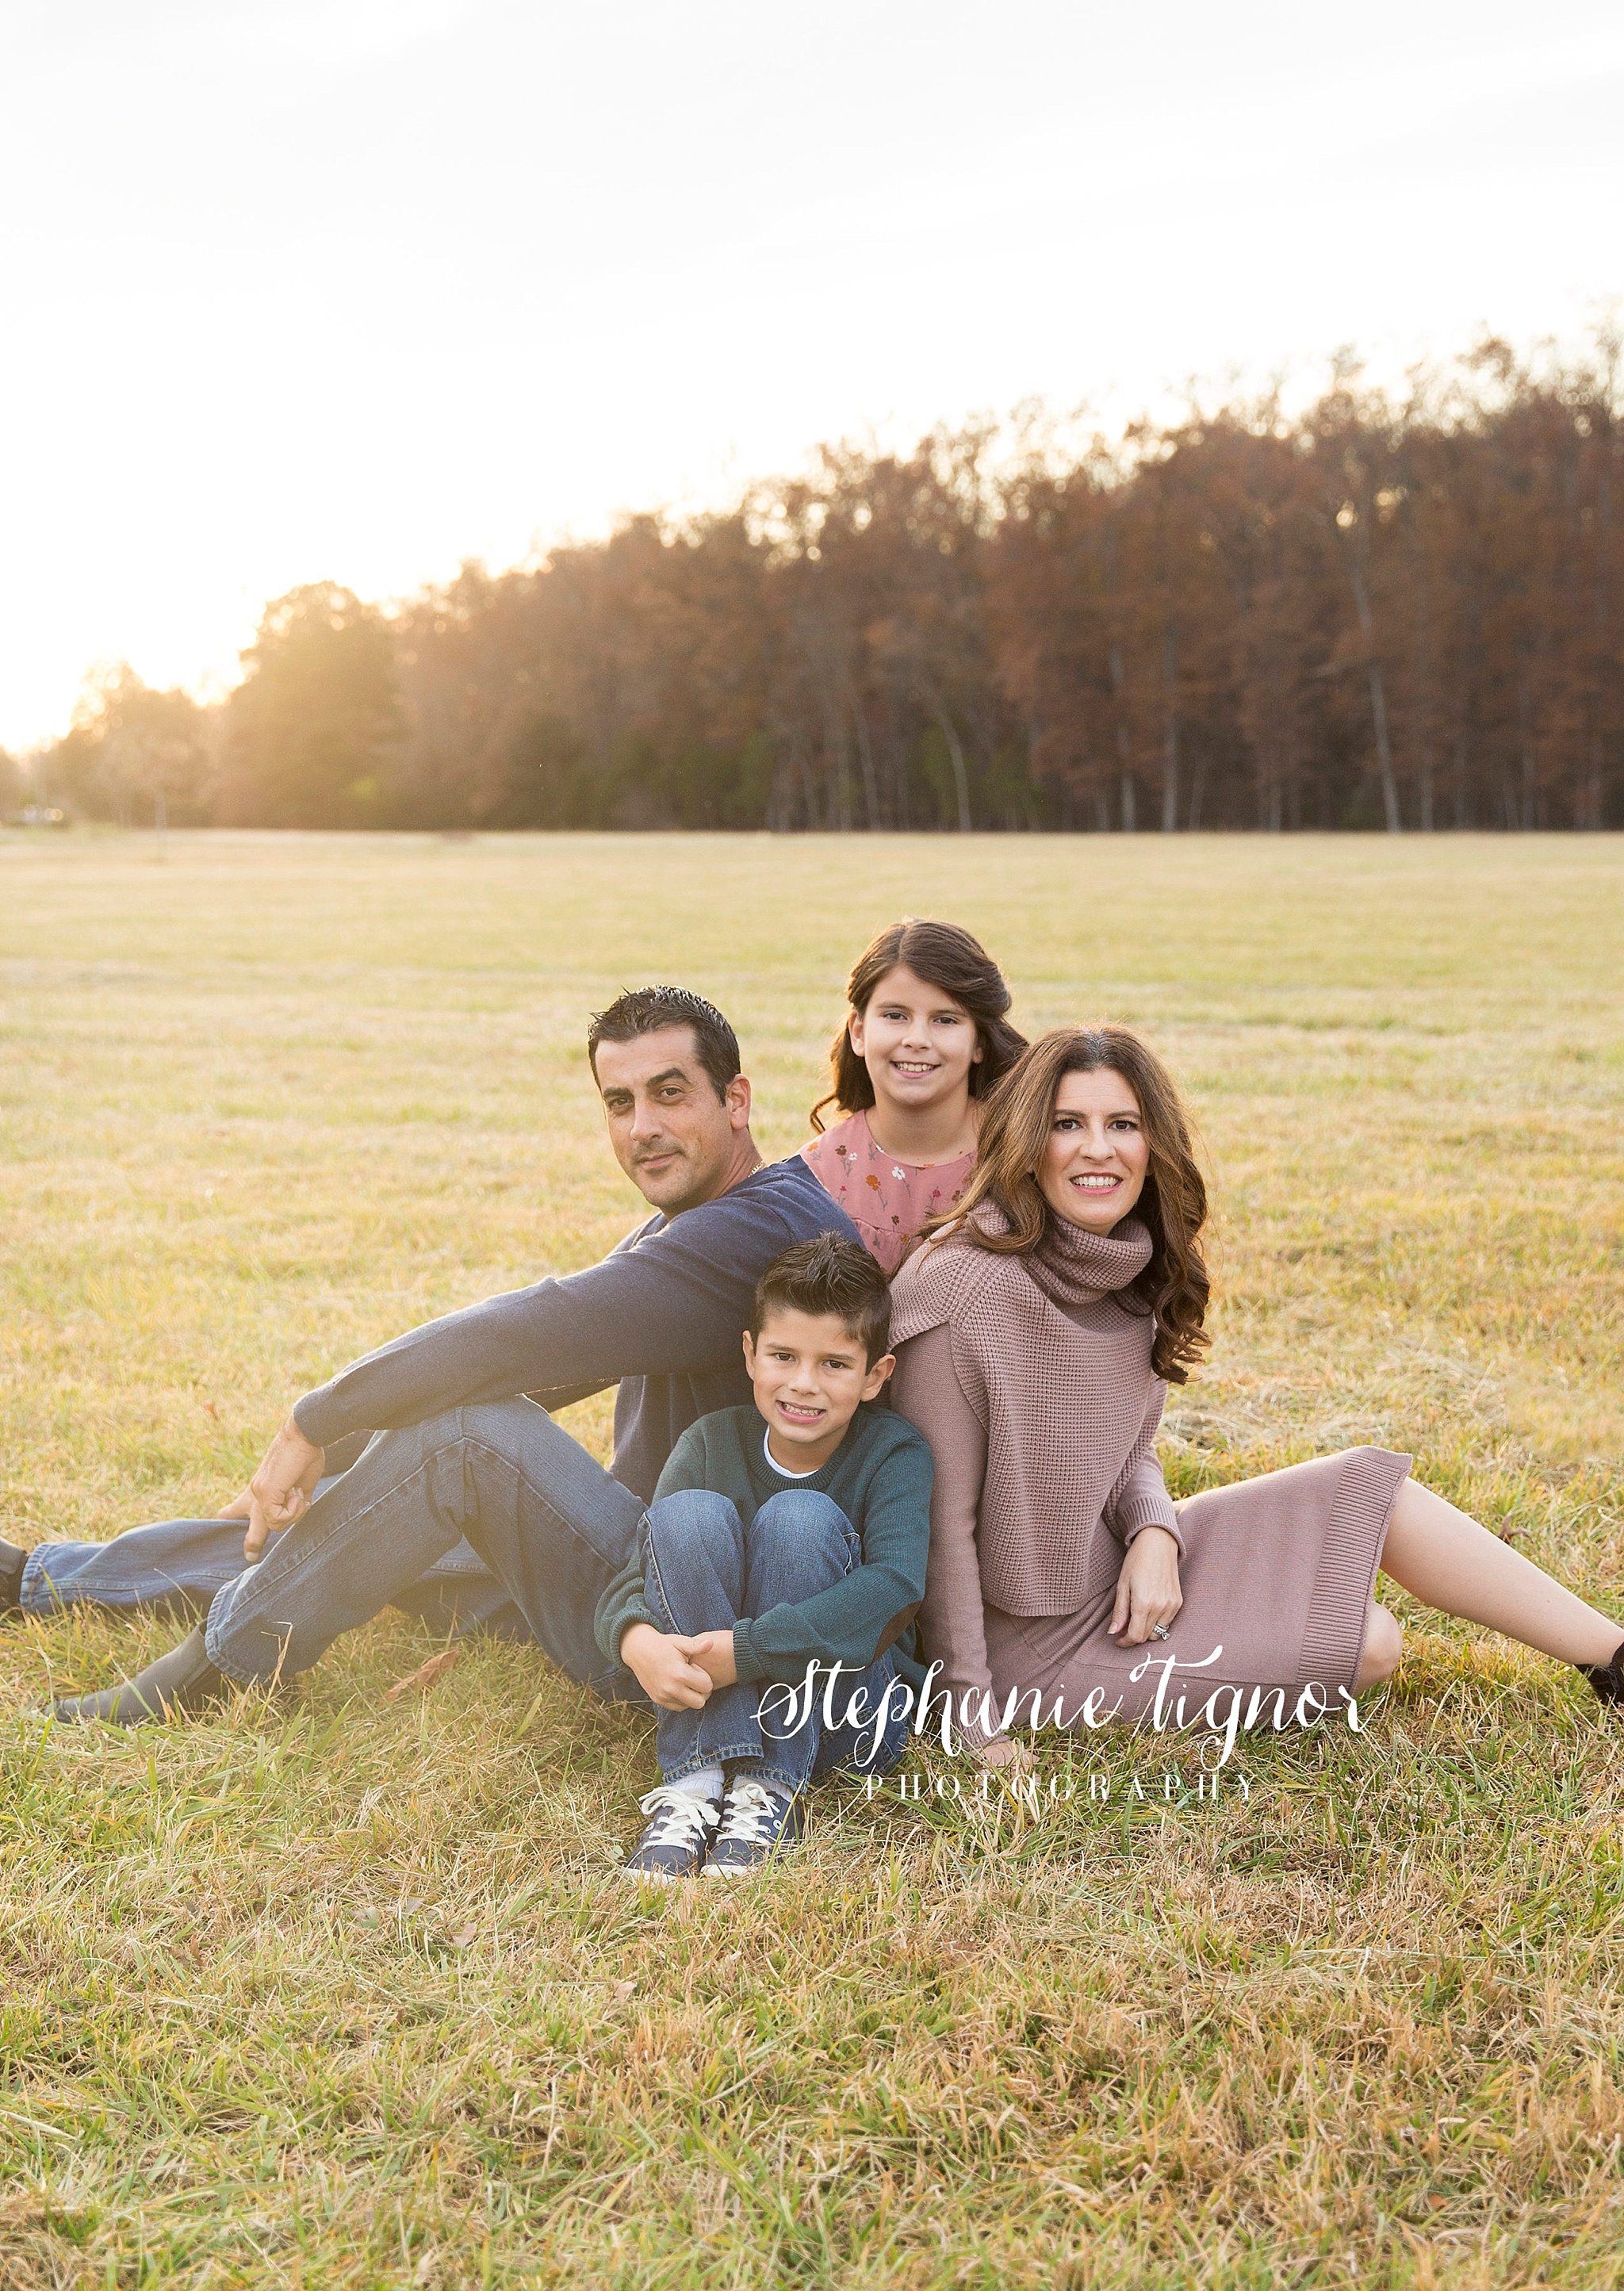 Stephanie Tignor Photography | Fredericksburg VA Family Photographer | Warrenton VA Family Photographer | Stafford VA Family Photographer | Family Photographer | Morais Vineyards